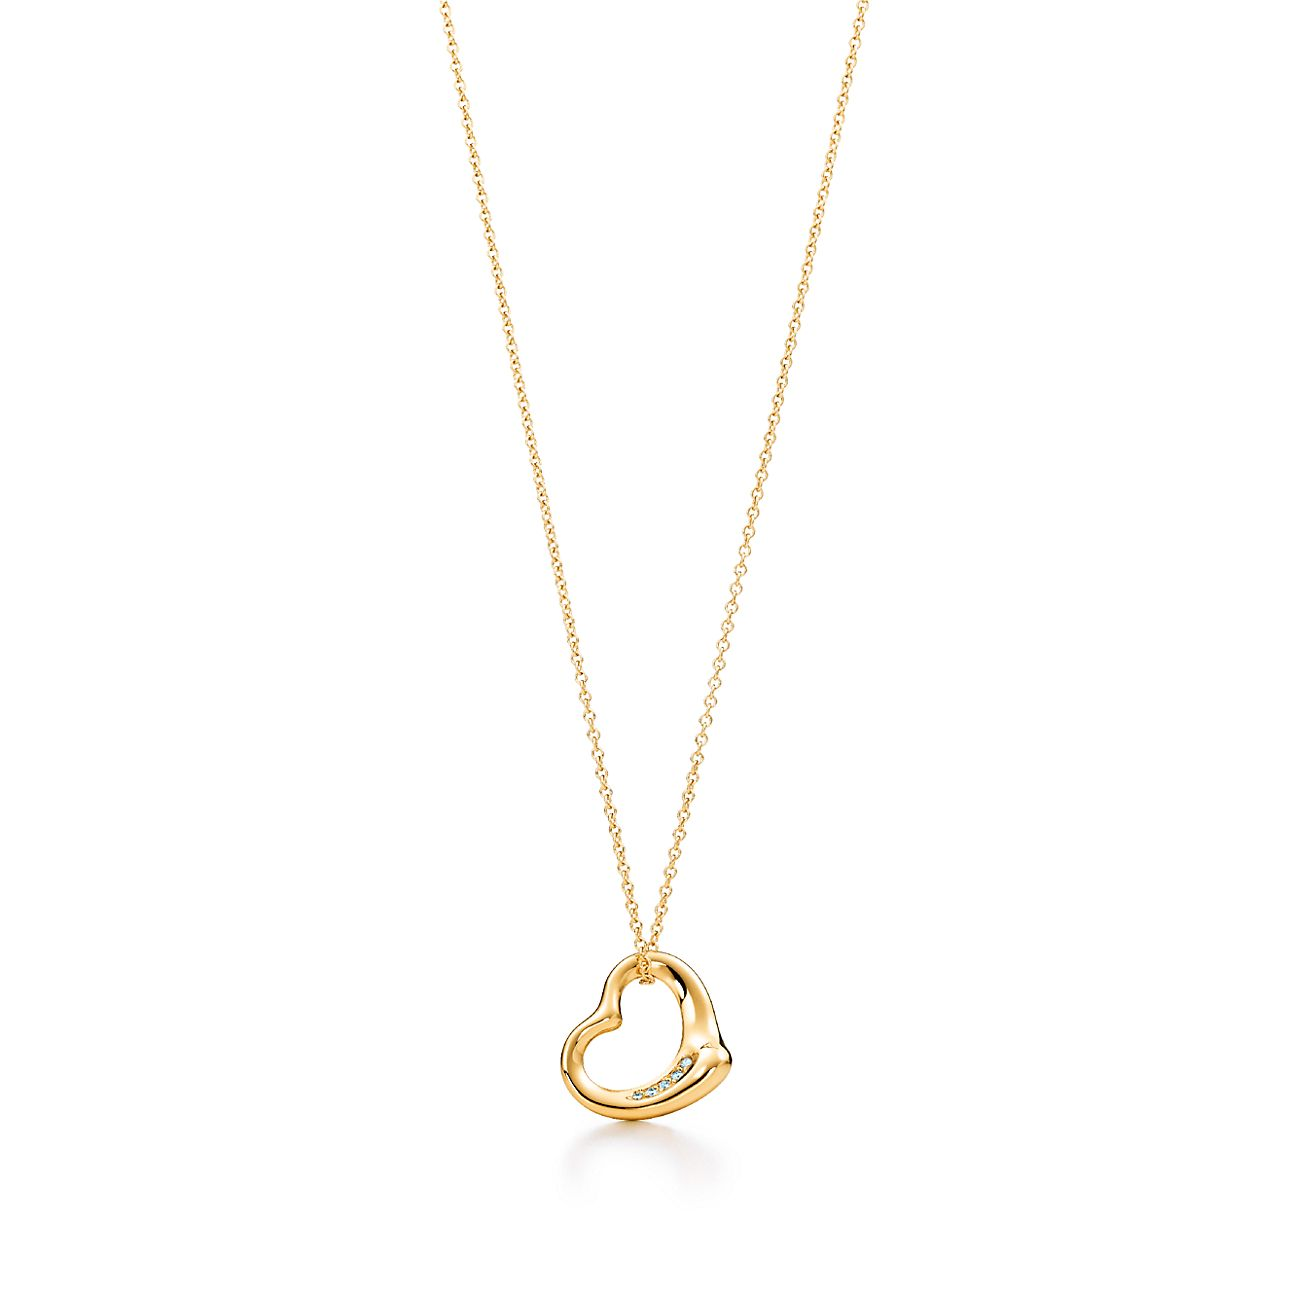 yellow pendant solitaire small nl yg round single in ct diamond gold necklace jewelry